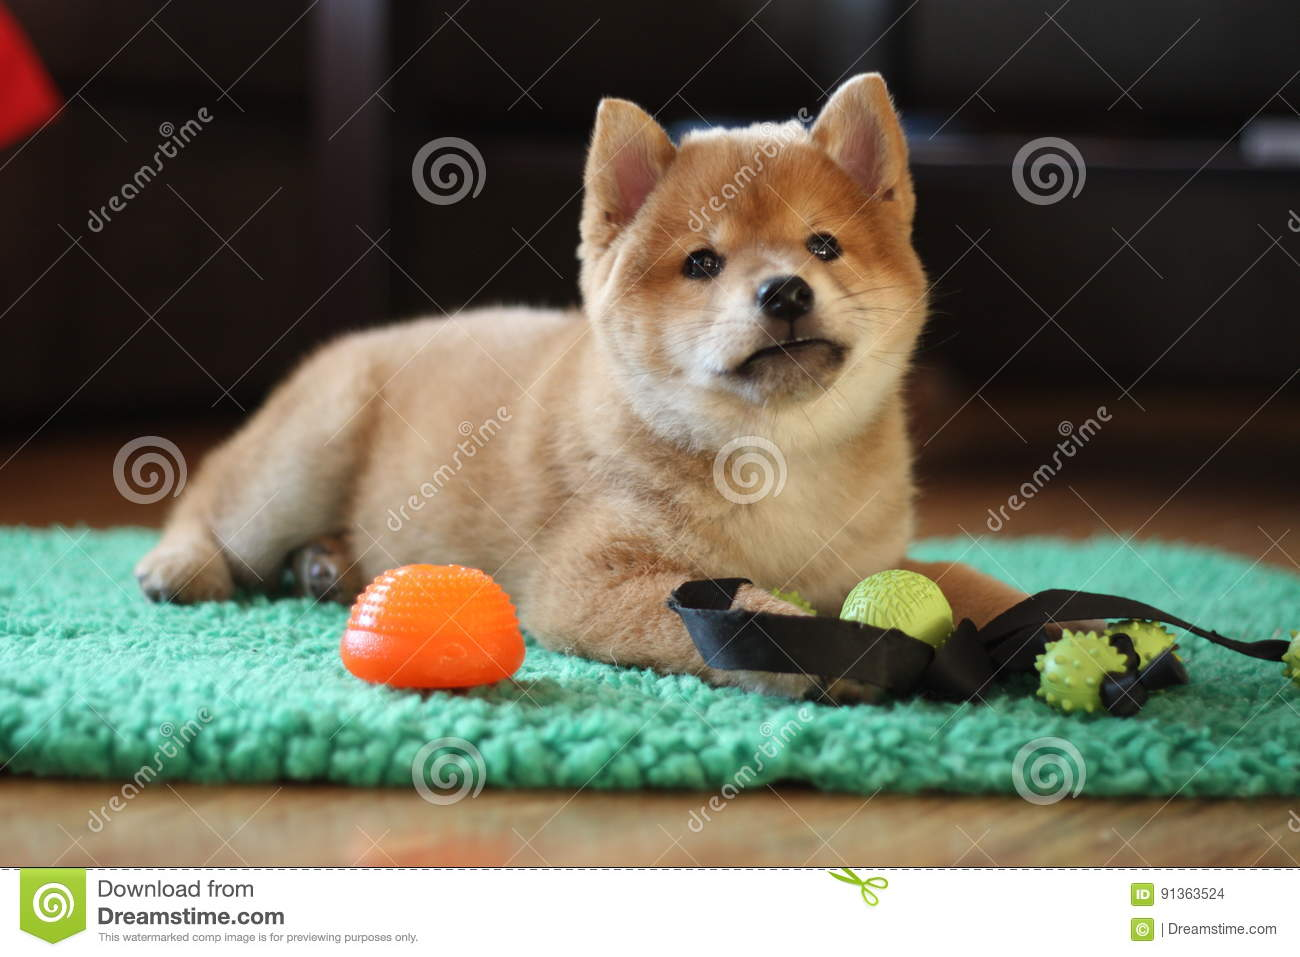 8 Weeks Old Red Shiba Inu Puppy So Cute Stock Photo Image Of Cold Small 91363524